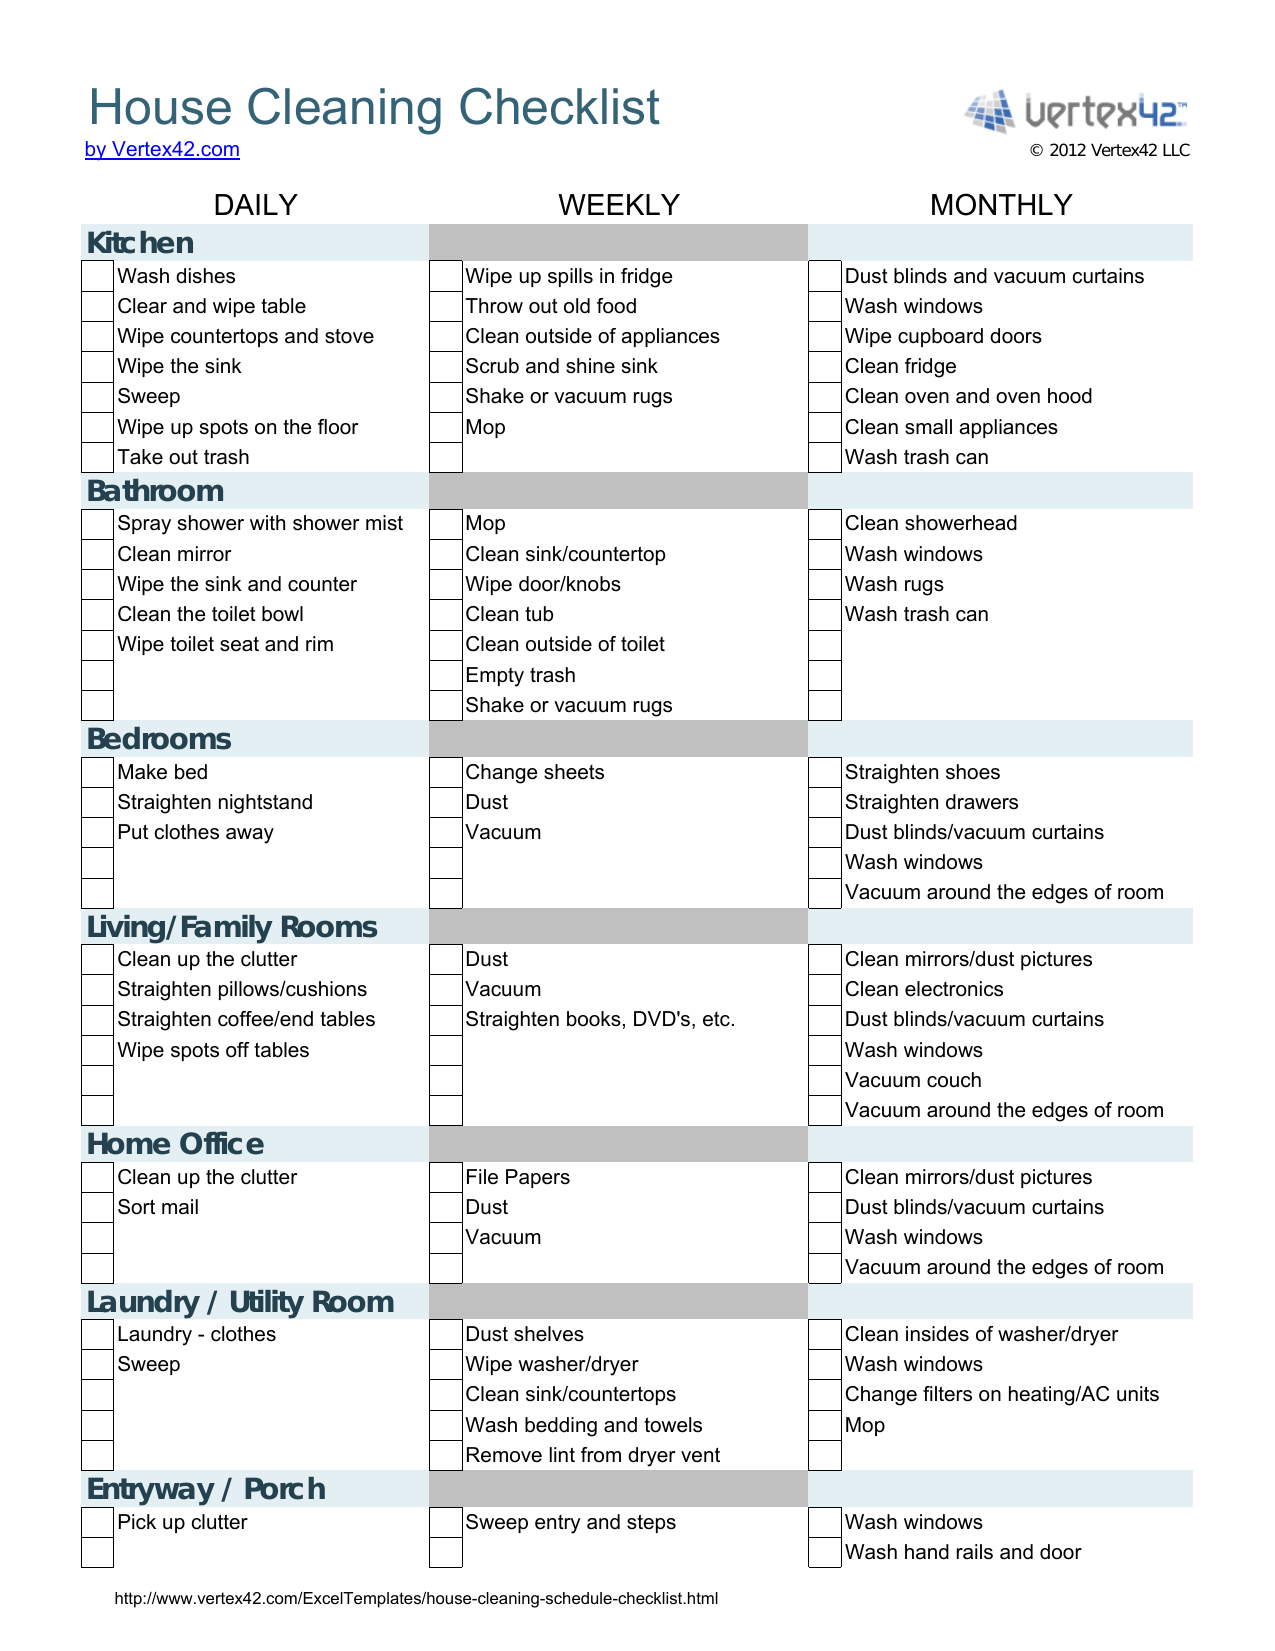 House Cleaning Spreadsheet Templates Inside Download House Cleaning Checklist Template  Excel  Pdf  Rtf